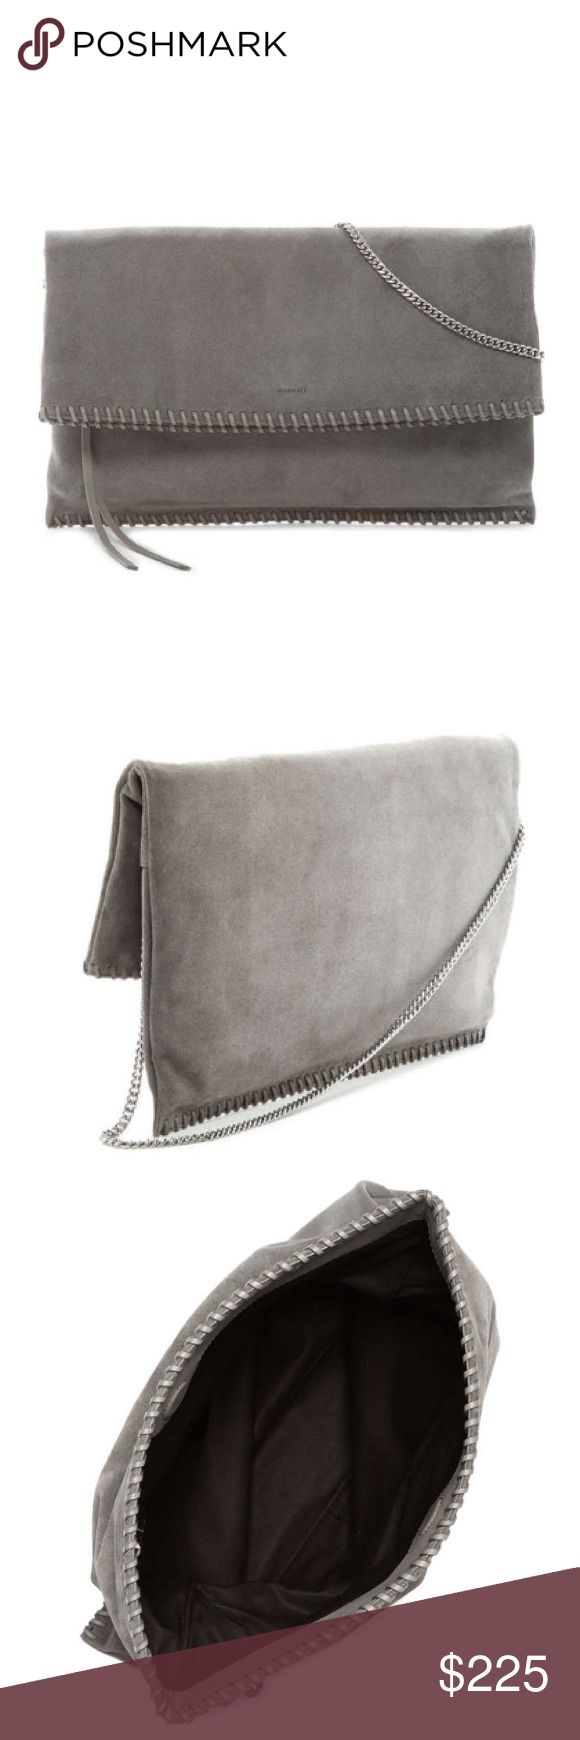 "AllSaints Handbag AllSaints Handbag.  NWT.  Whipstitched leather trim plays up the '70s-inspired vibe of a lush suede fold-over clutch fitted with a polished silvertone shoulder strap that dangles in a gorgeous swoop when not in use. Magnetic closure in fold-over opening. Zip pocket under flap. Interior zip, wall and smartphone pockets. Leather. 14 ¼""W x 9""H x ½""D. 12"" strap drop. 1.5 lbs. All Saints Bags Clutches & Wristlets"